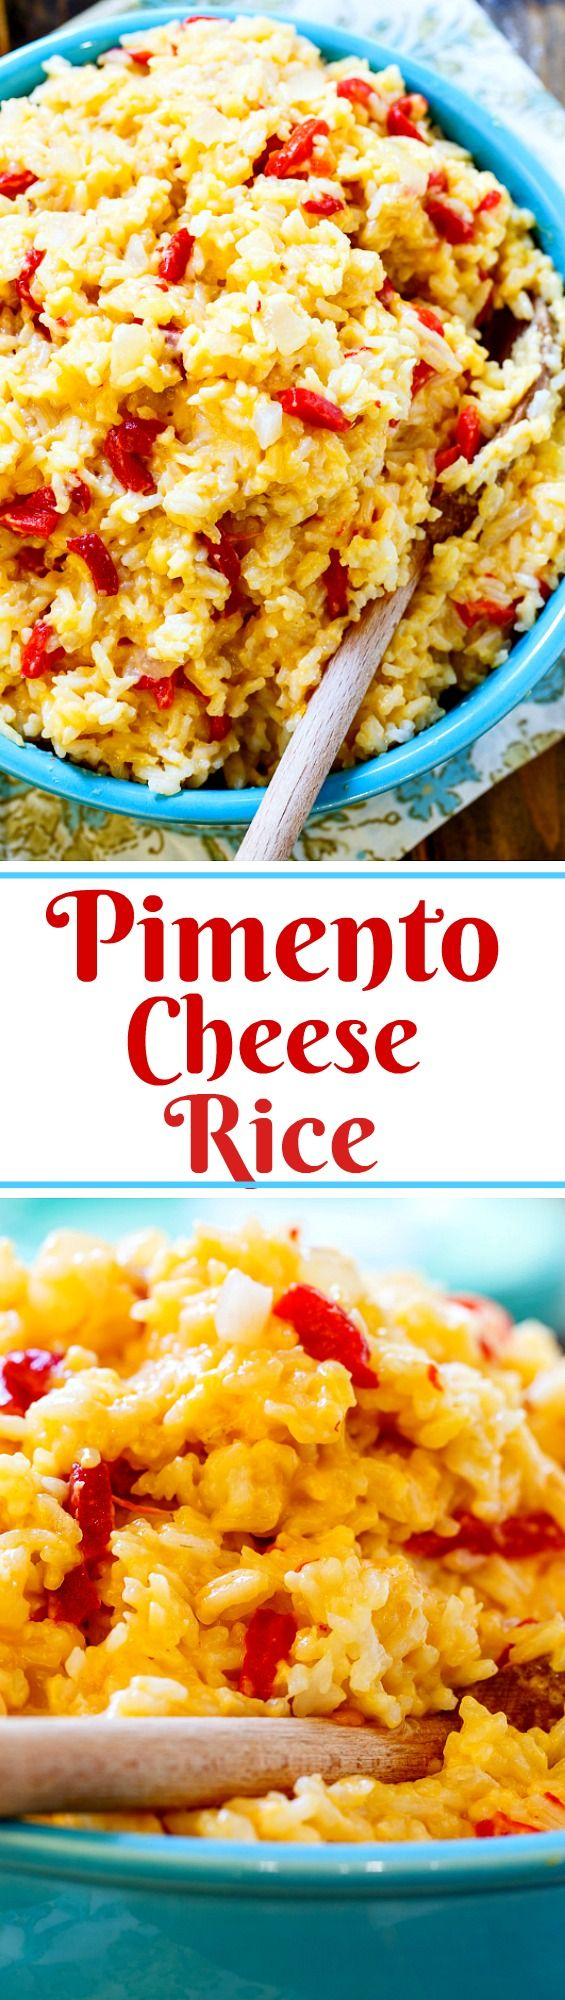 Pimento Cheese Rice combines the flavors of pimento cheese with white rice to create a cheesy, flavorful side dish.